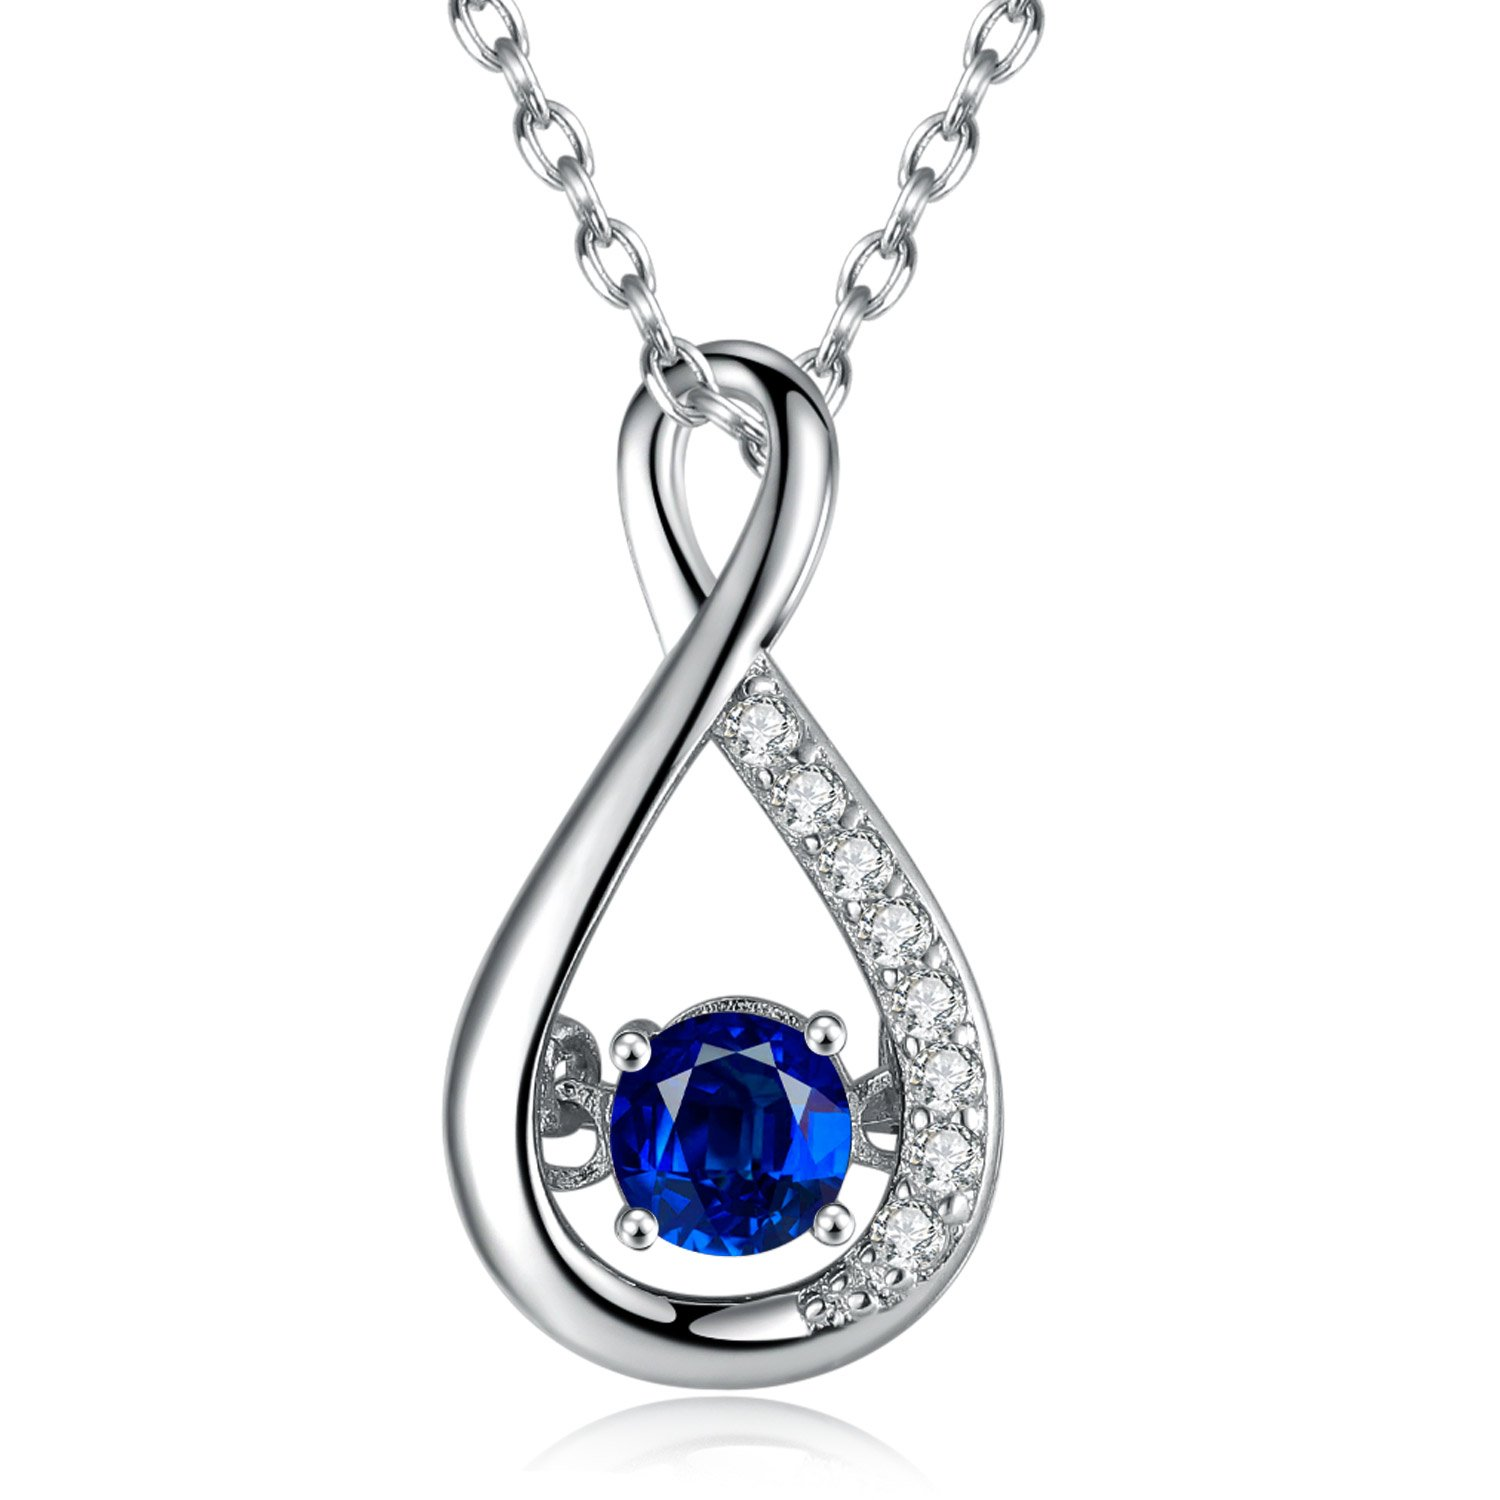 dina and blue sapphire product mackney rock necklace multi crystal oval strand dinamackney com